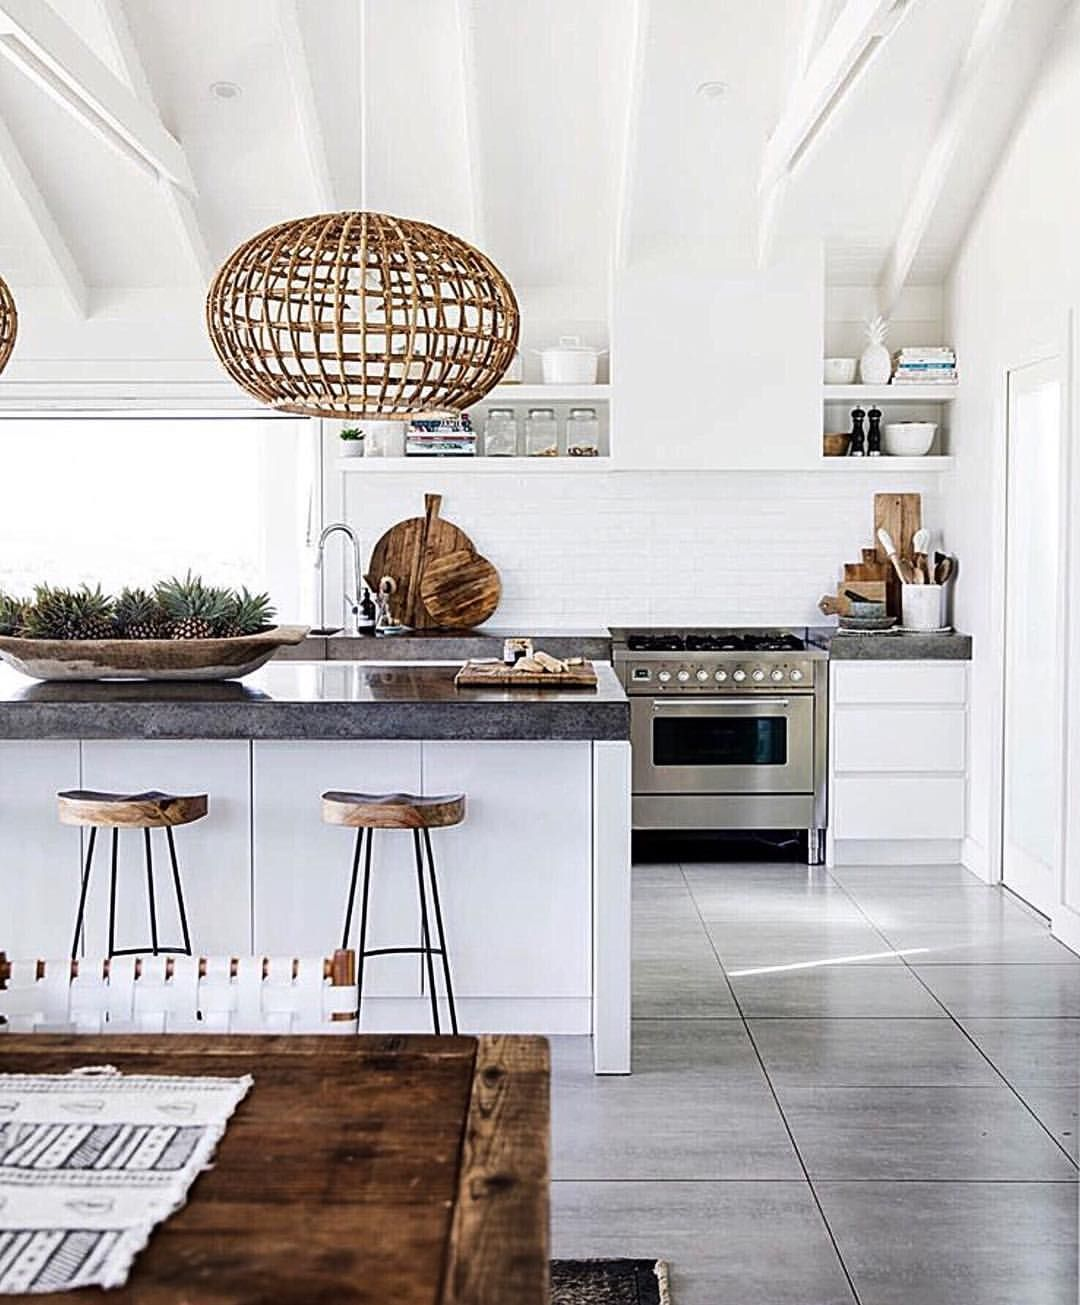 Kitchen inspiration I love woods and whites